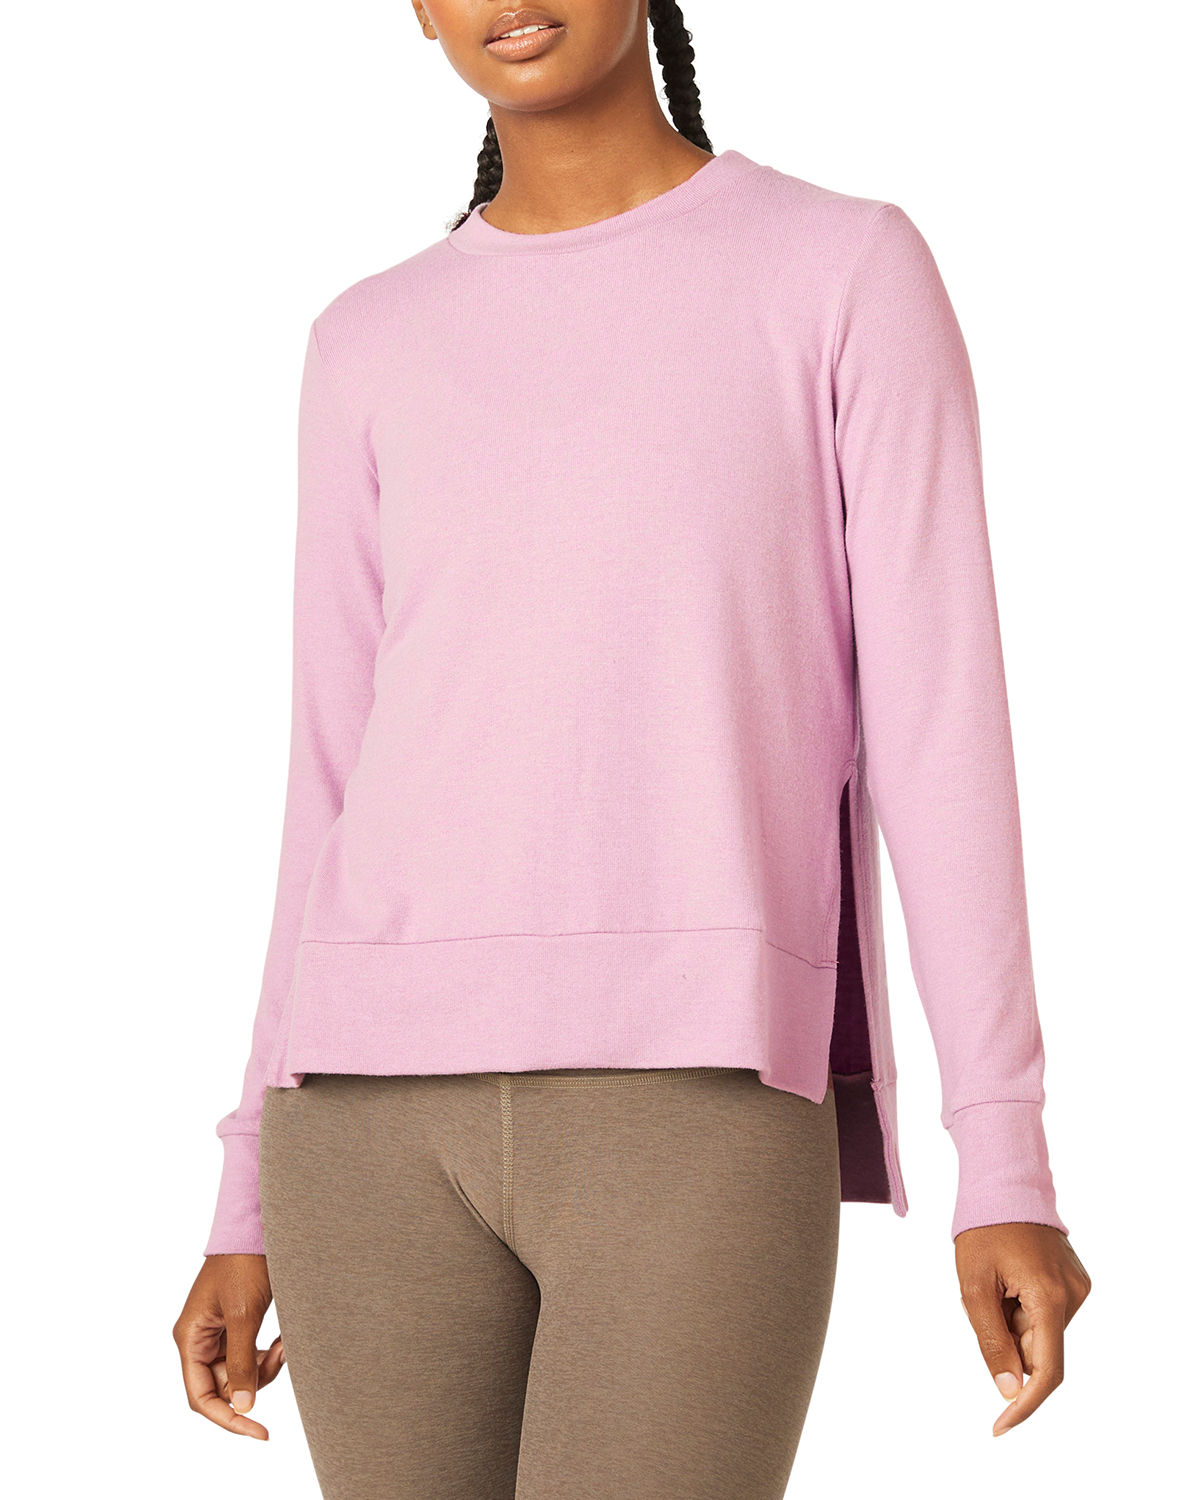 Beyond Yoga Clothing JUST CHILLIN LONG-SLEEVE PULLOVER